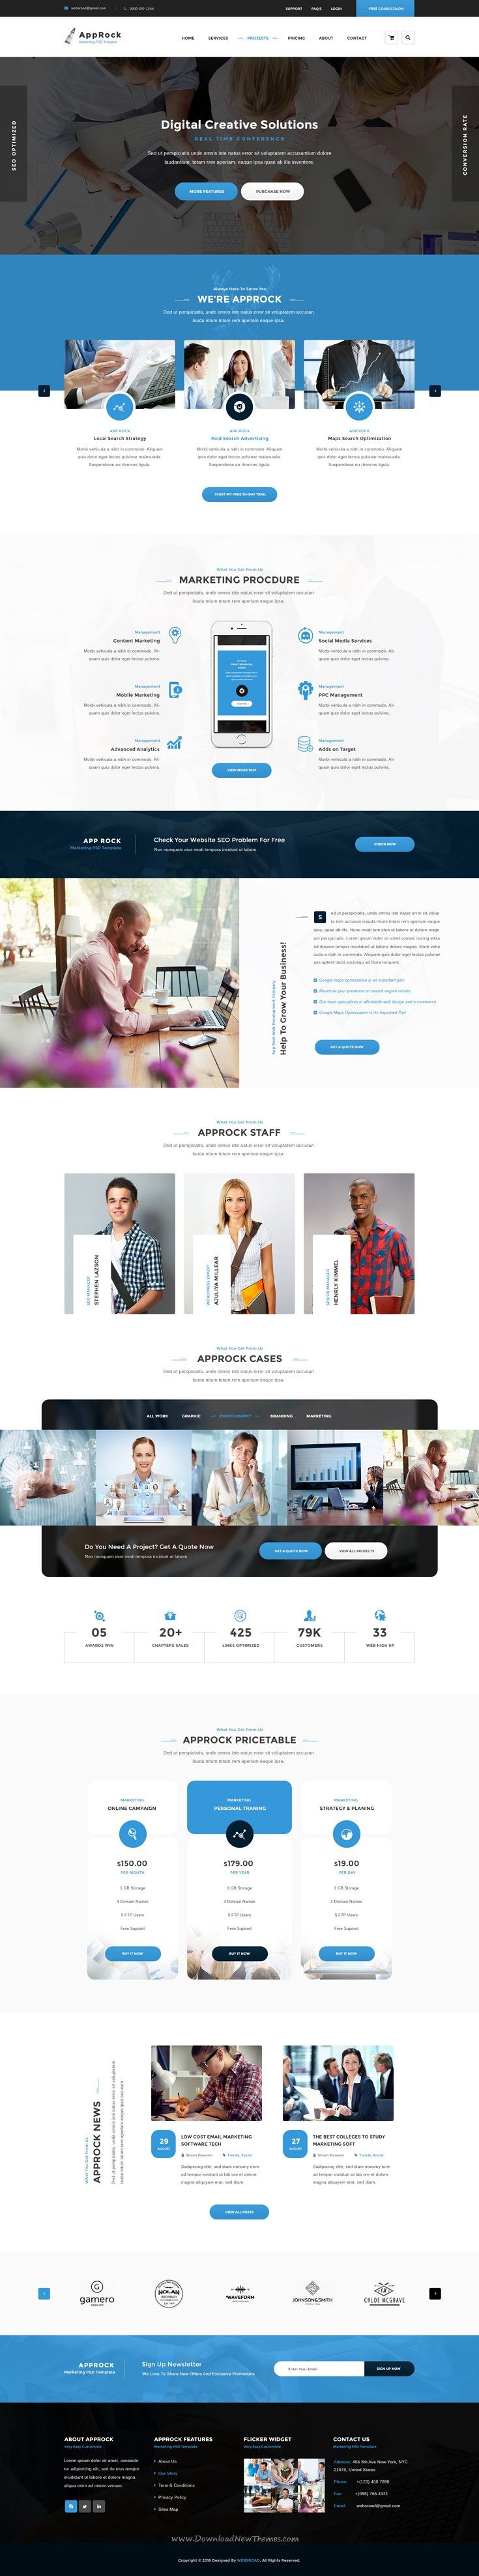 AppRock is Clean and professional #PSD Template for #business and financial services #website. Download Now!